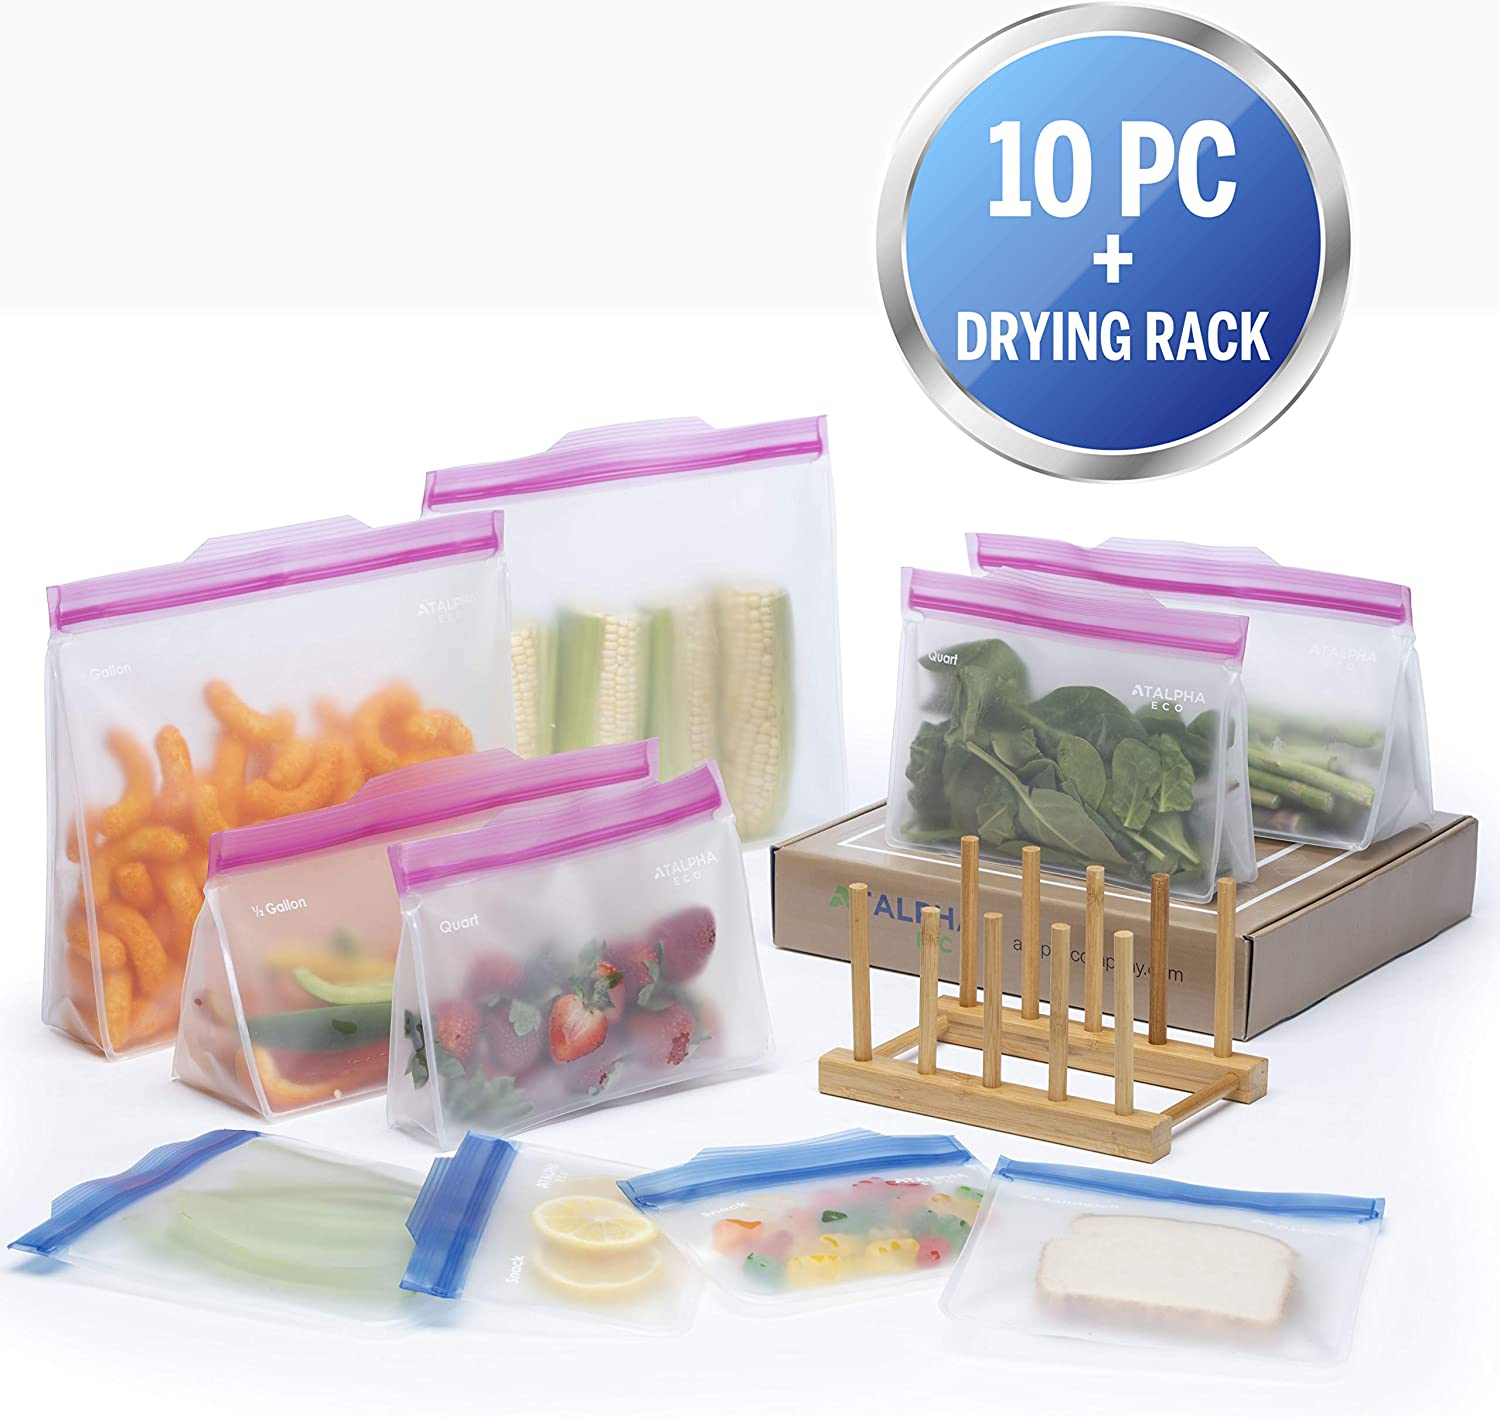 Atalpha Premium Reusable Baggies with Easy Open Tabs & Drying Rack |10 Pc Set: 6 Stand Up Reusable Storage Bags | 2 Reusable Sandwich Bags | 2 Snack Bags | Bamboo Drying Rack | Reusable Ziplock Bags